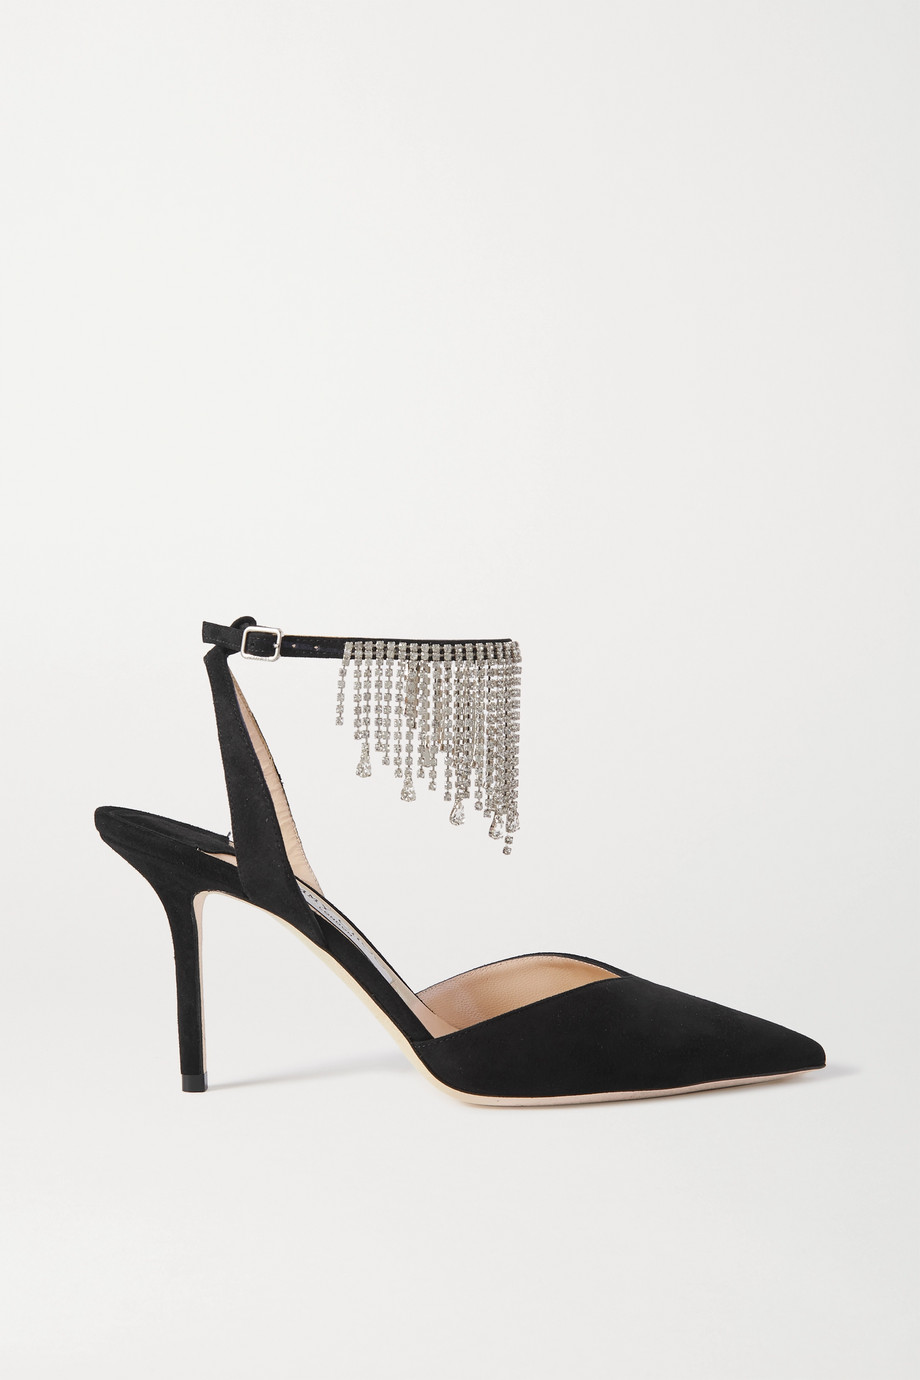 Jimmy Choo Bertie 85 crystal-embellished suede pumps